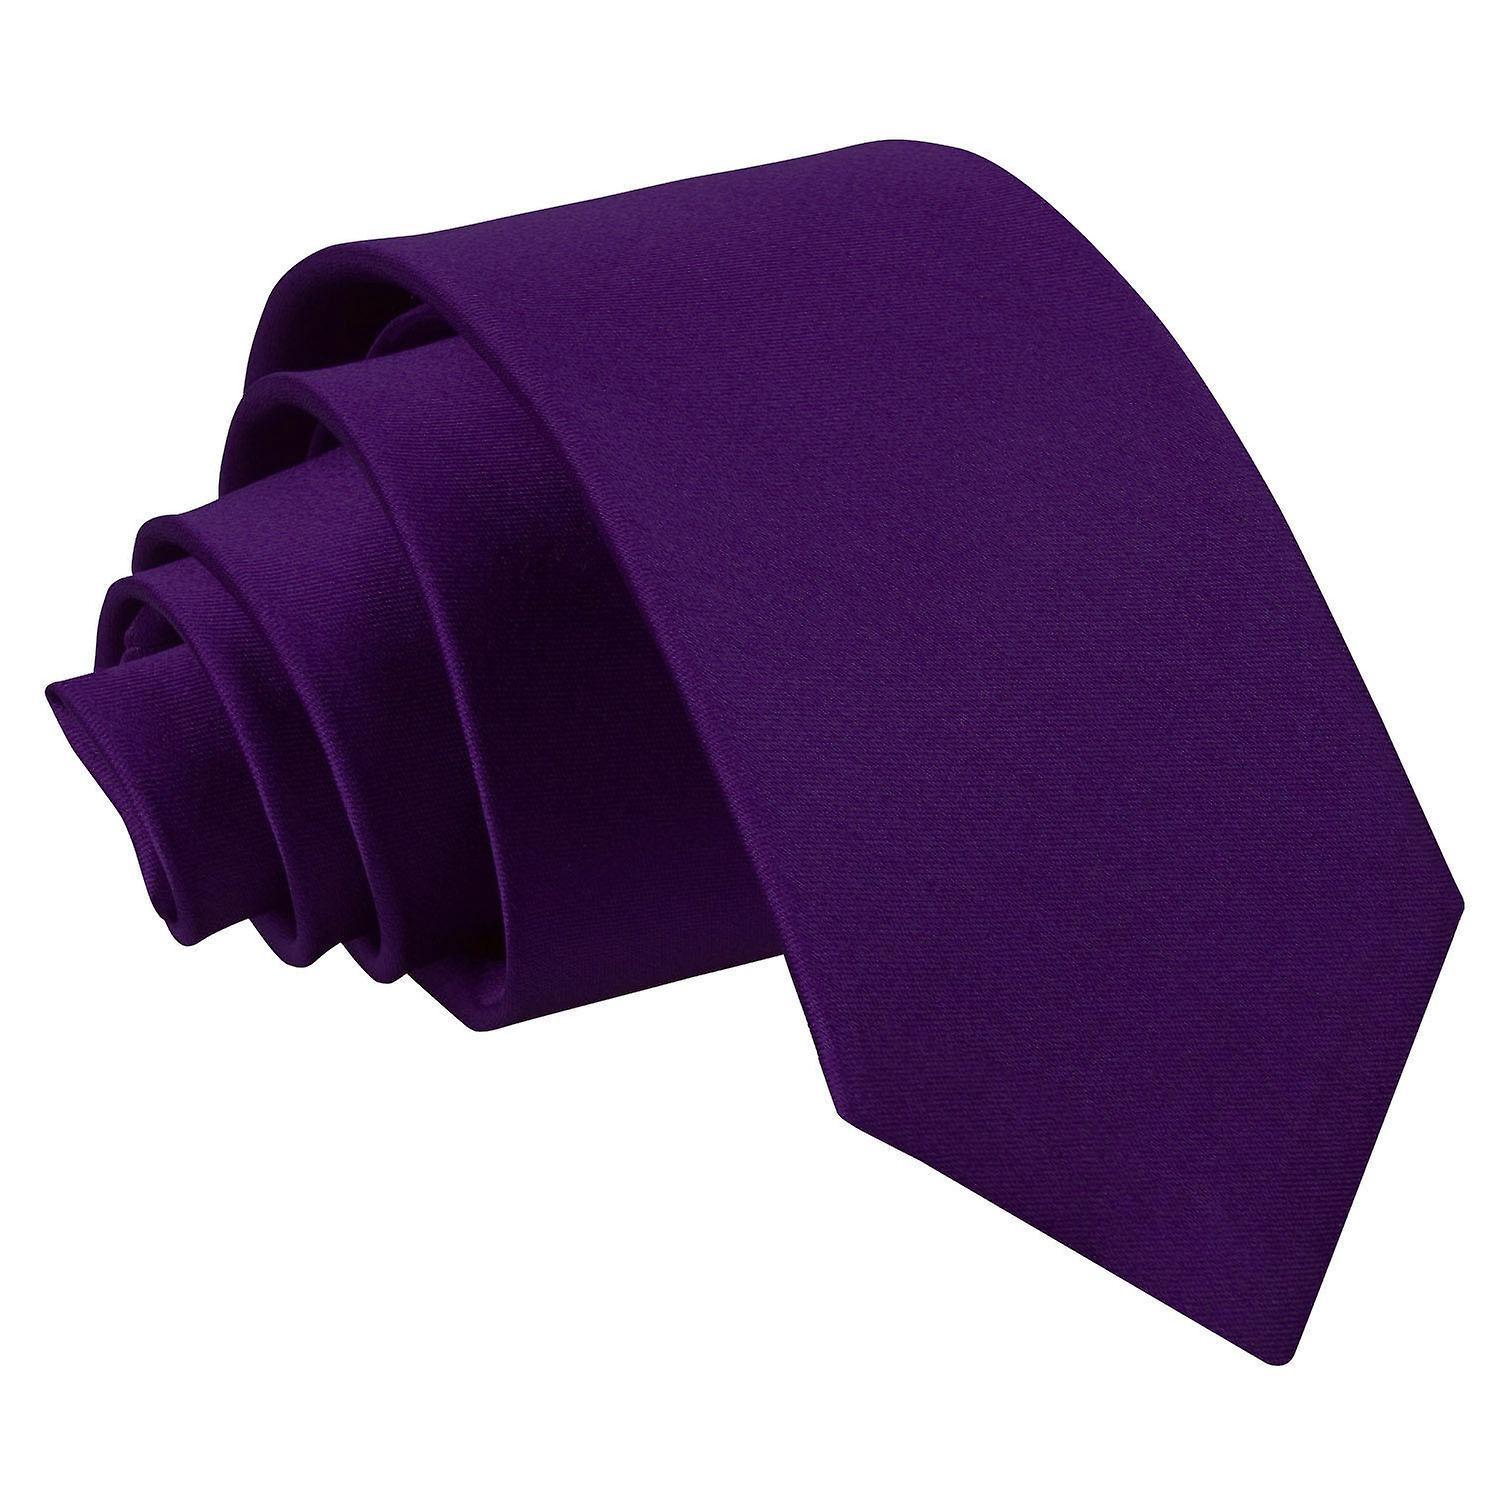 Boy's Plain Purple Satin Tie (8+ years)